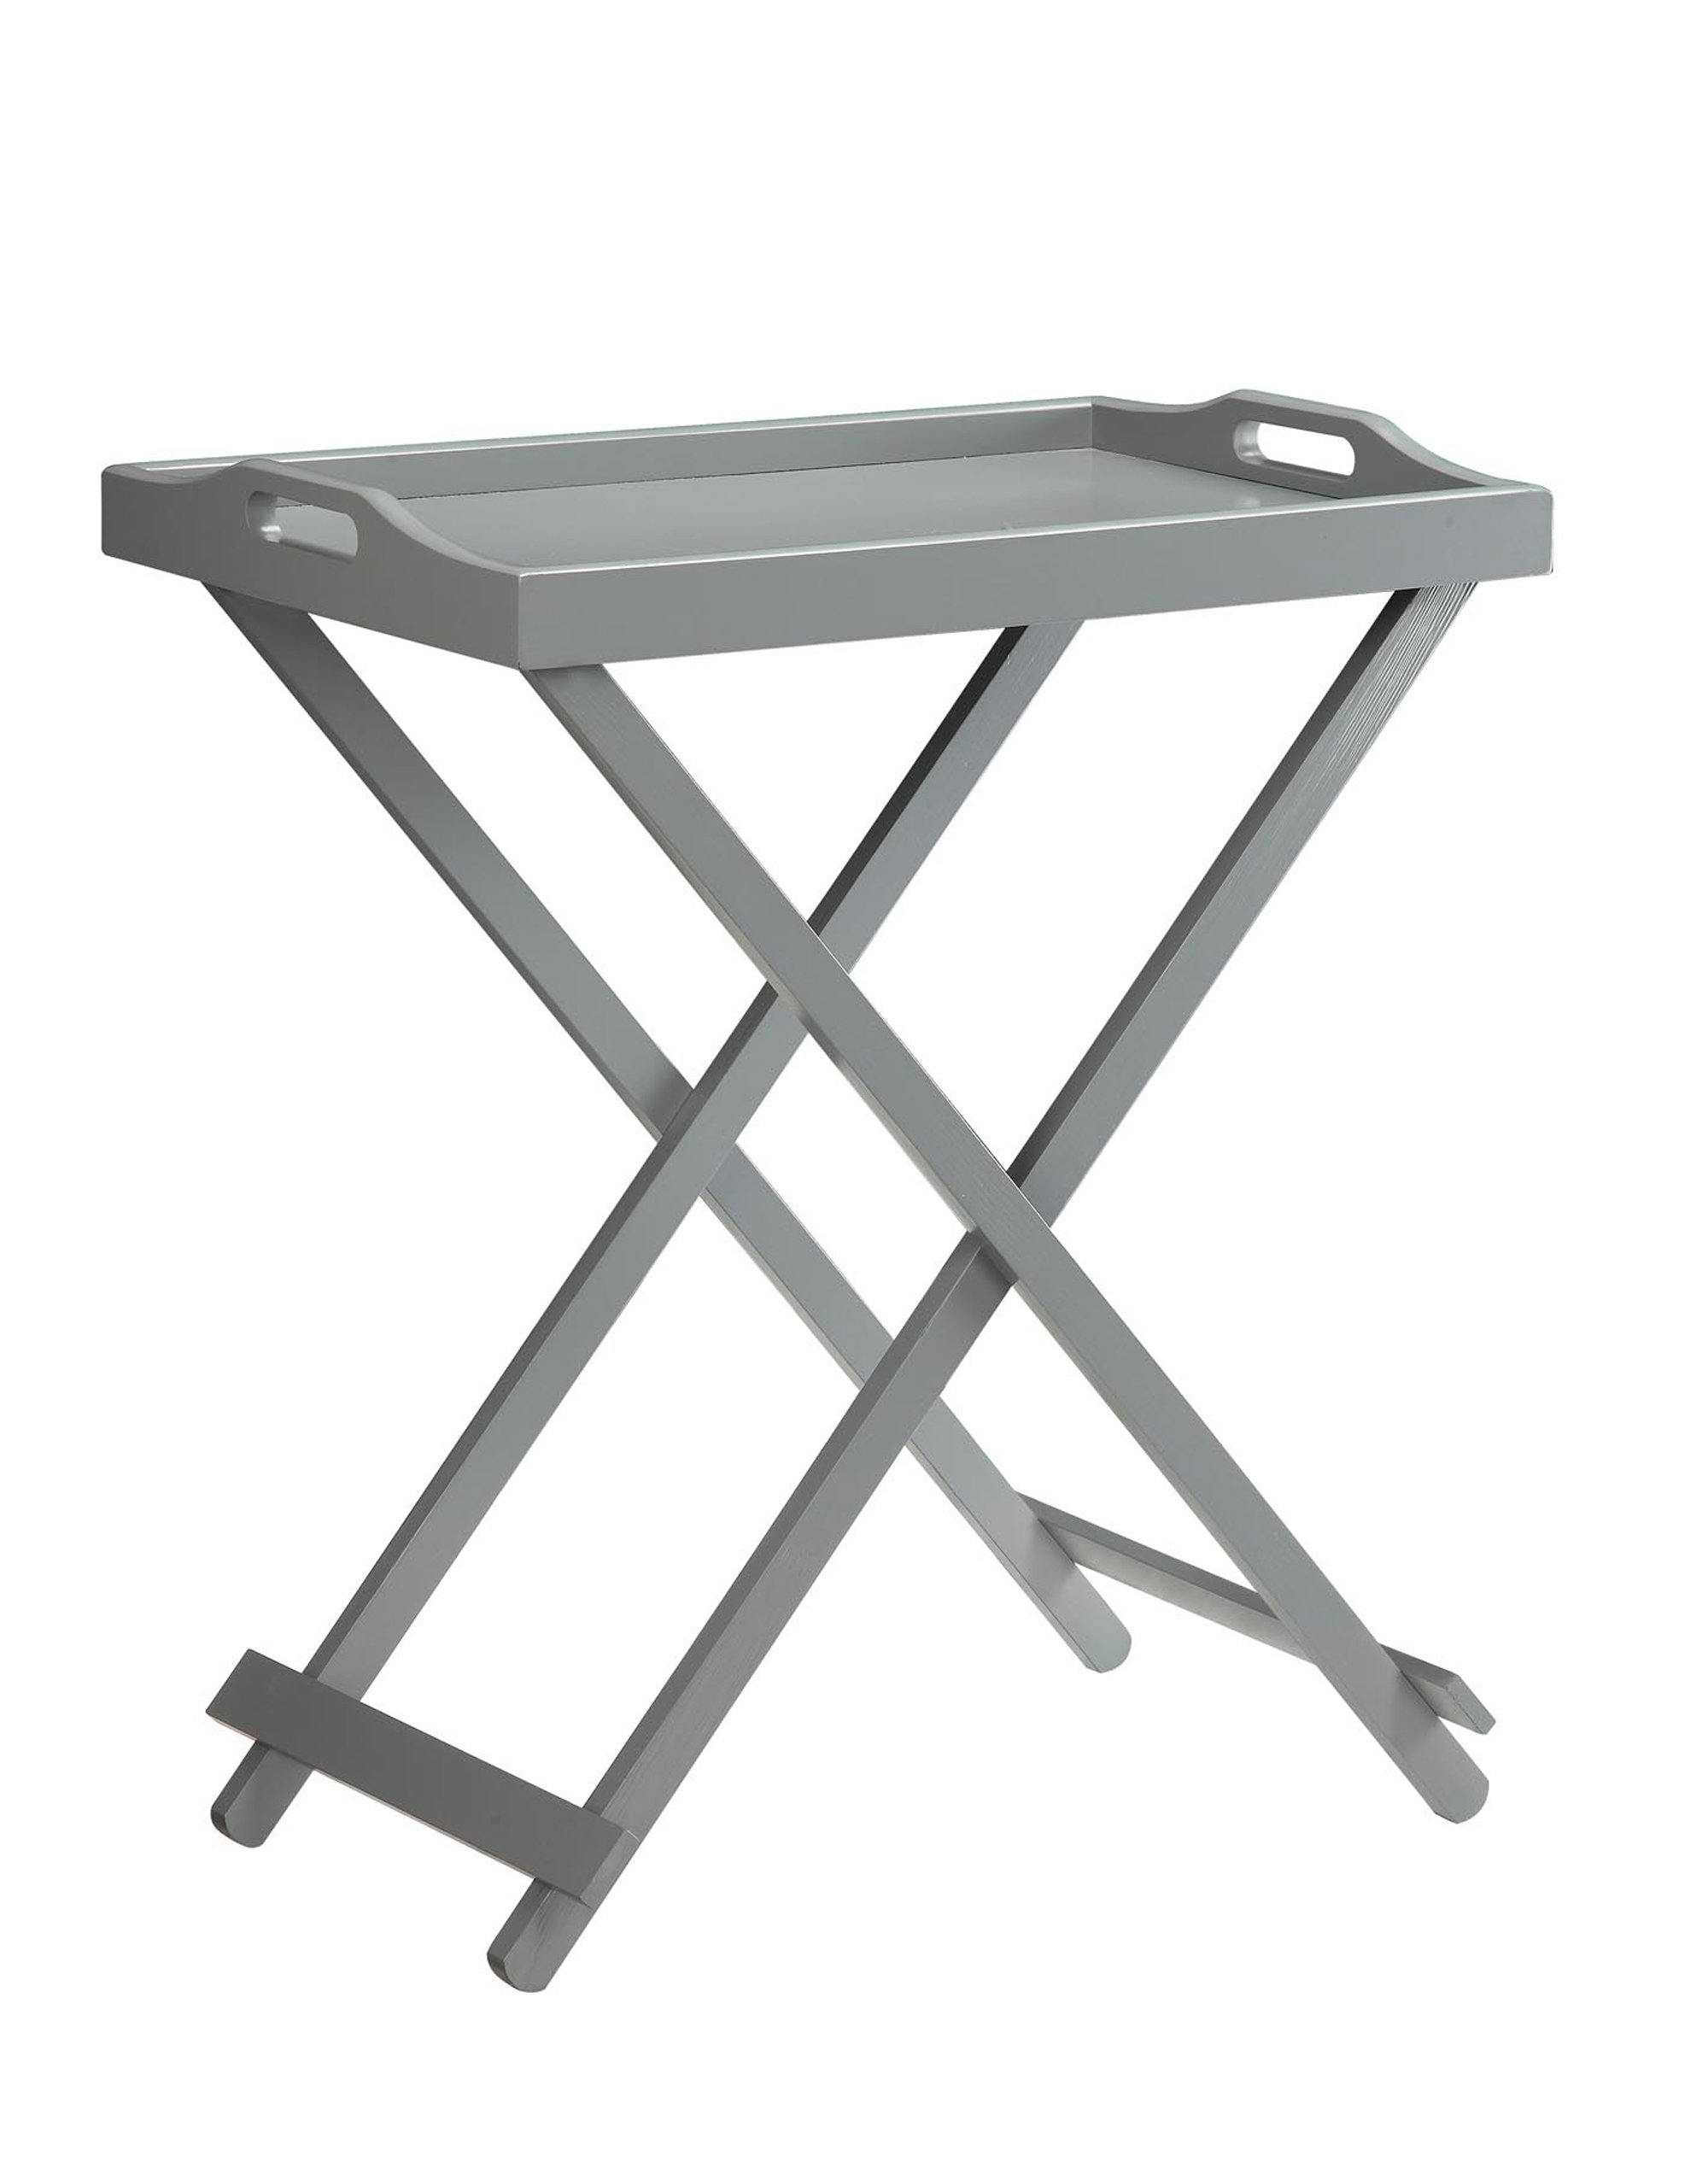 Convenience Concepts Designs2Go Folding Tray Table, Gray by Convenience Concepts (Image #1)